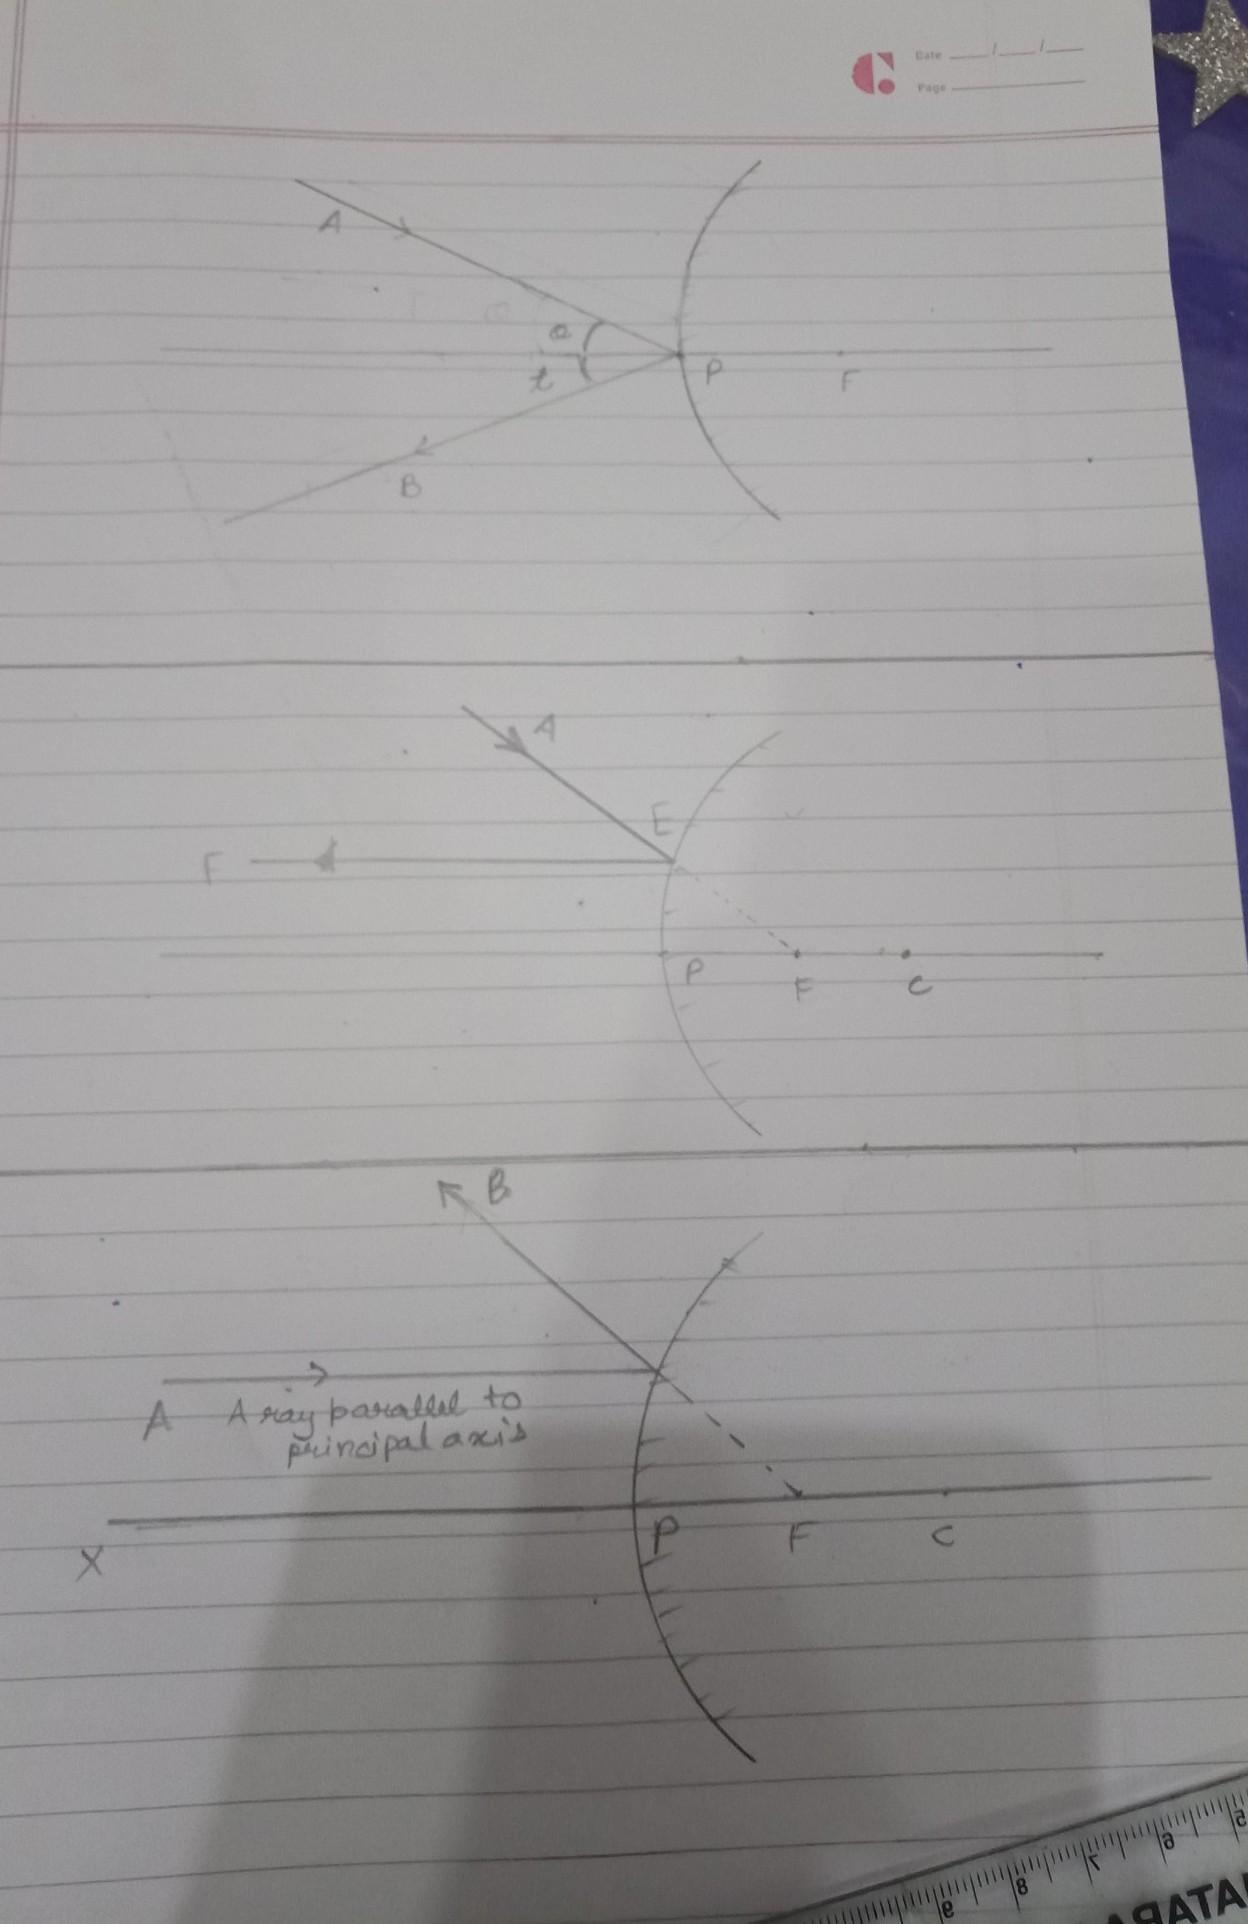 Draw A Ray Diagram To Show The Path Of The Reflected Ray